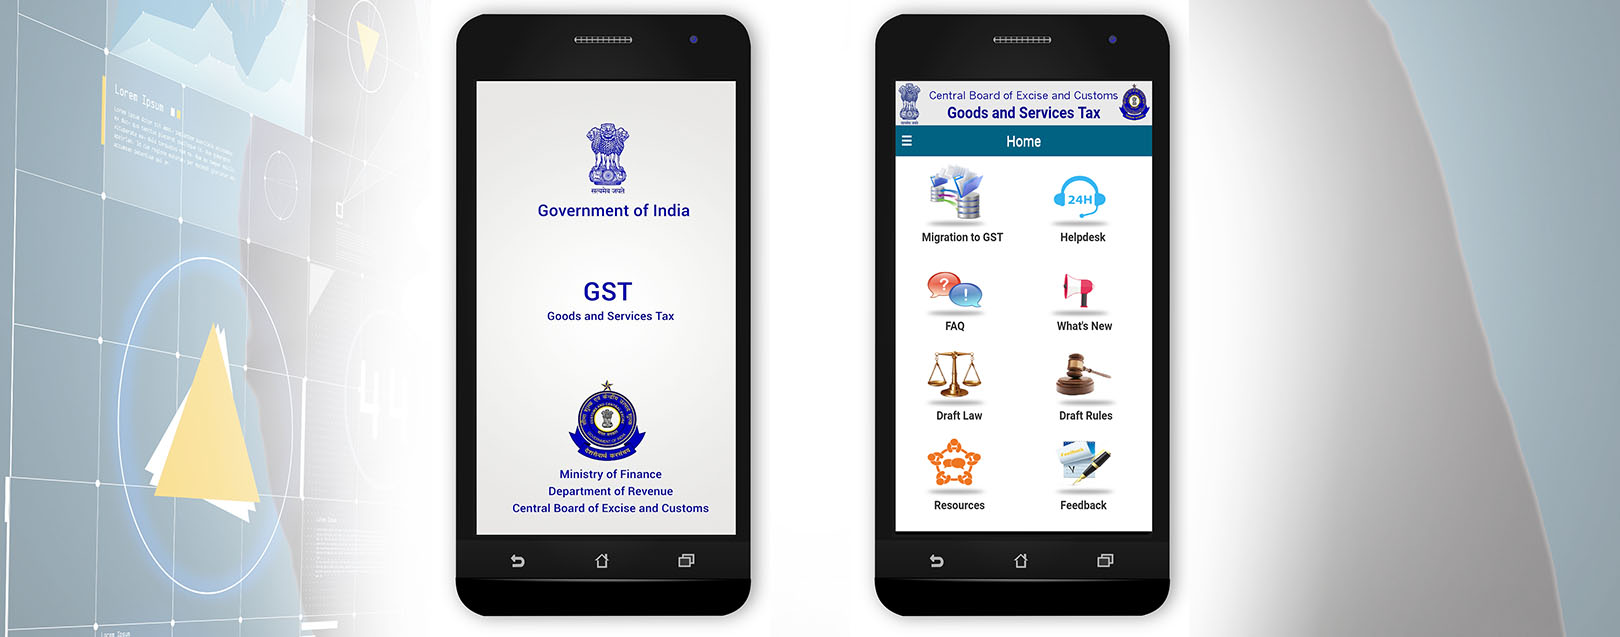 CBEC launches Mobile App for GST